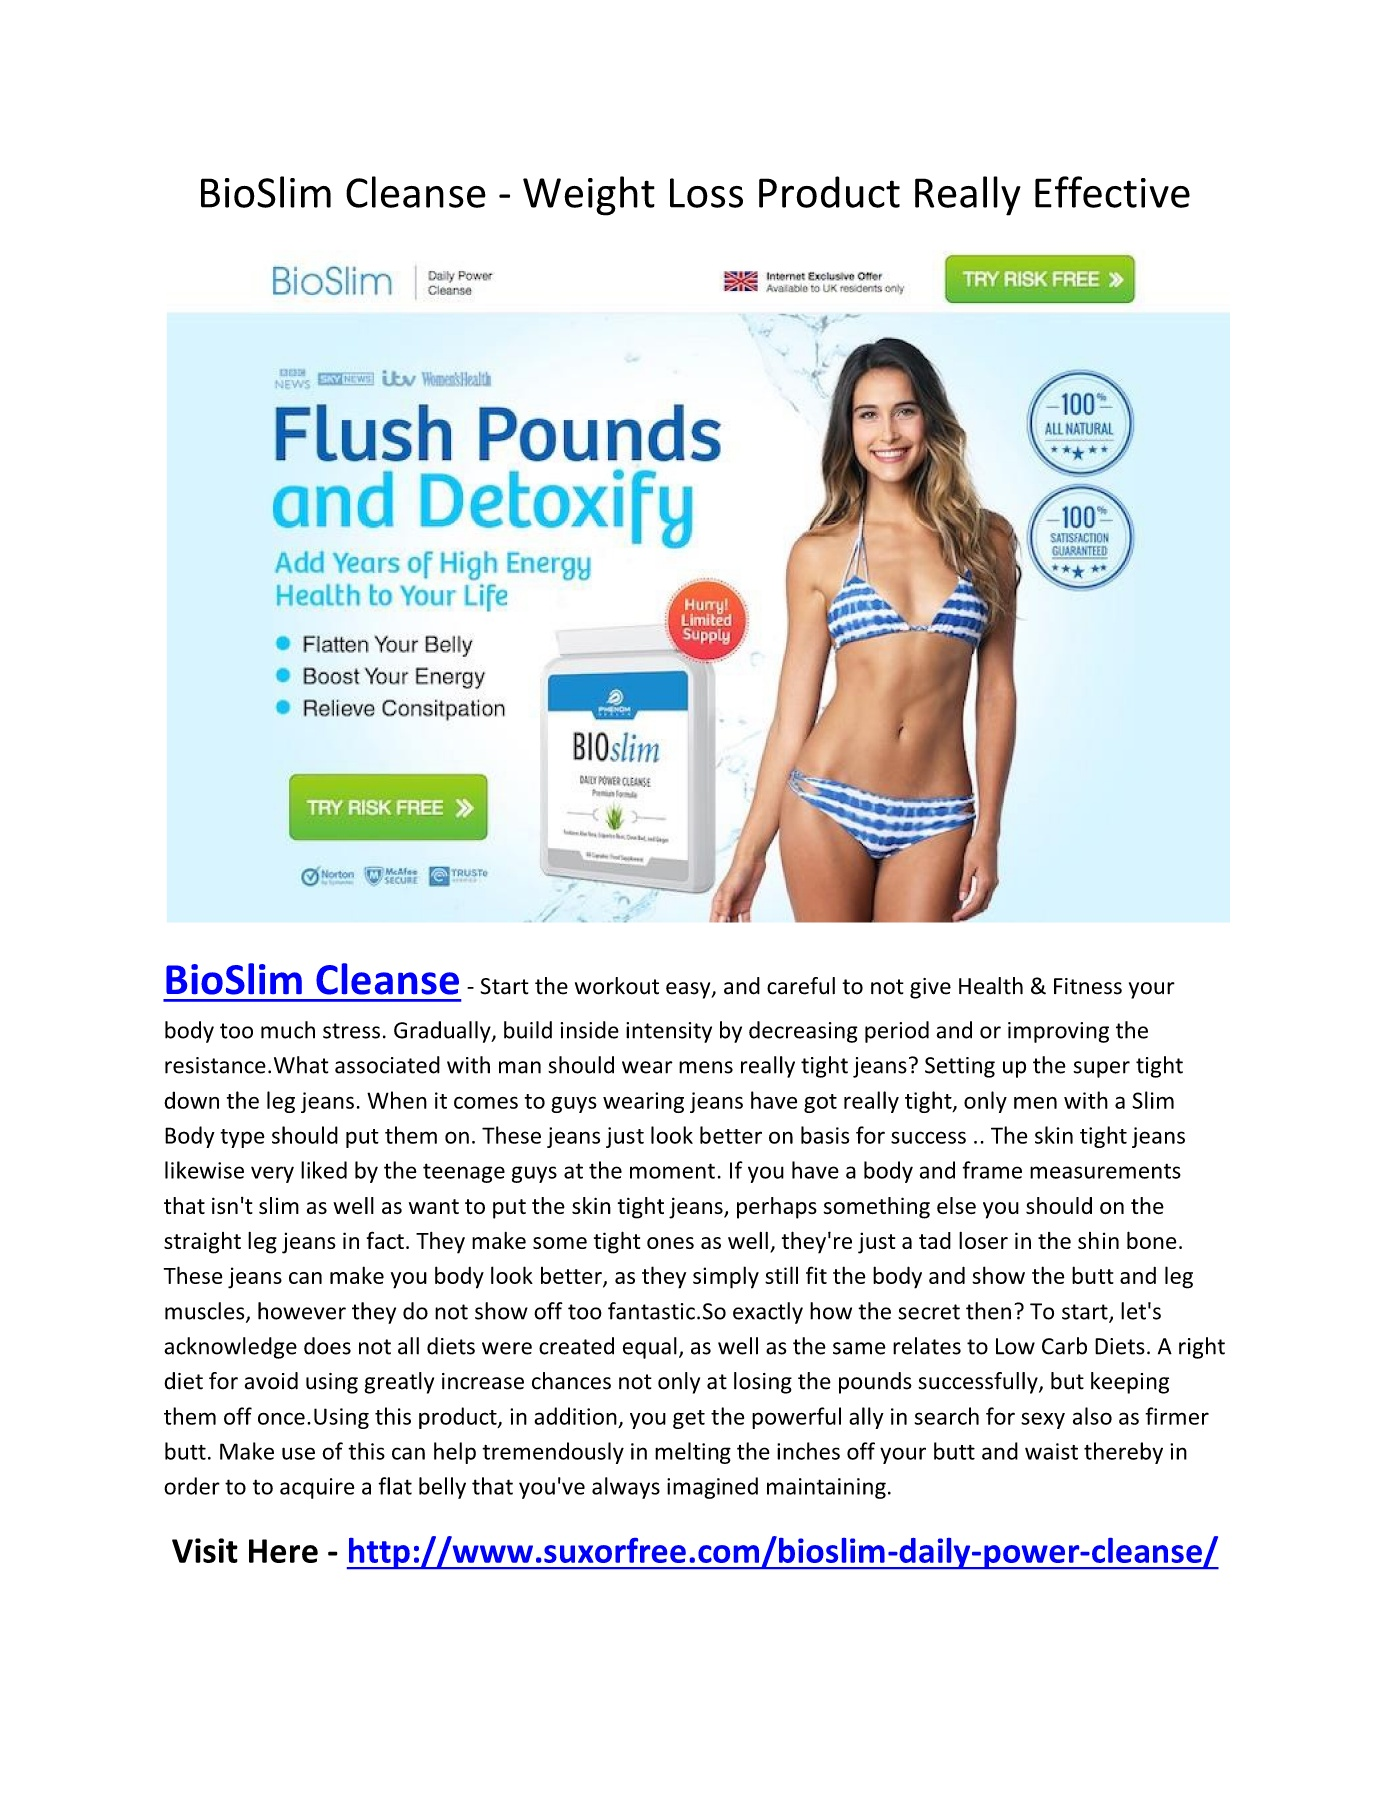 Bioslim Cleanse Weight Loss Product Really Effective